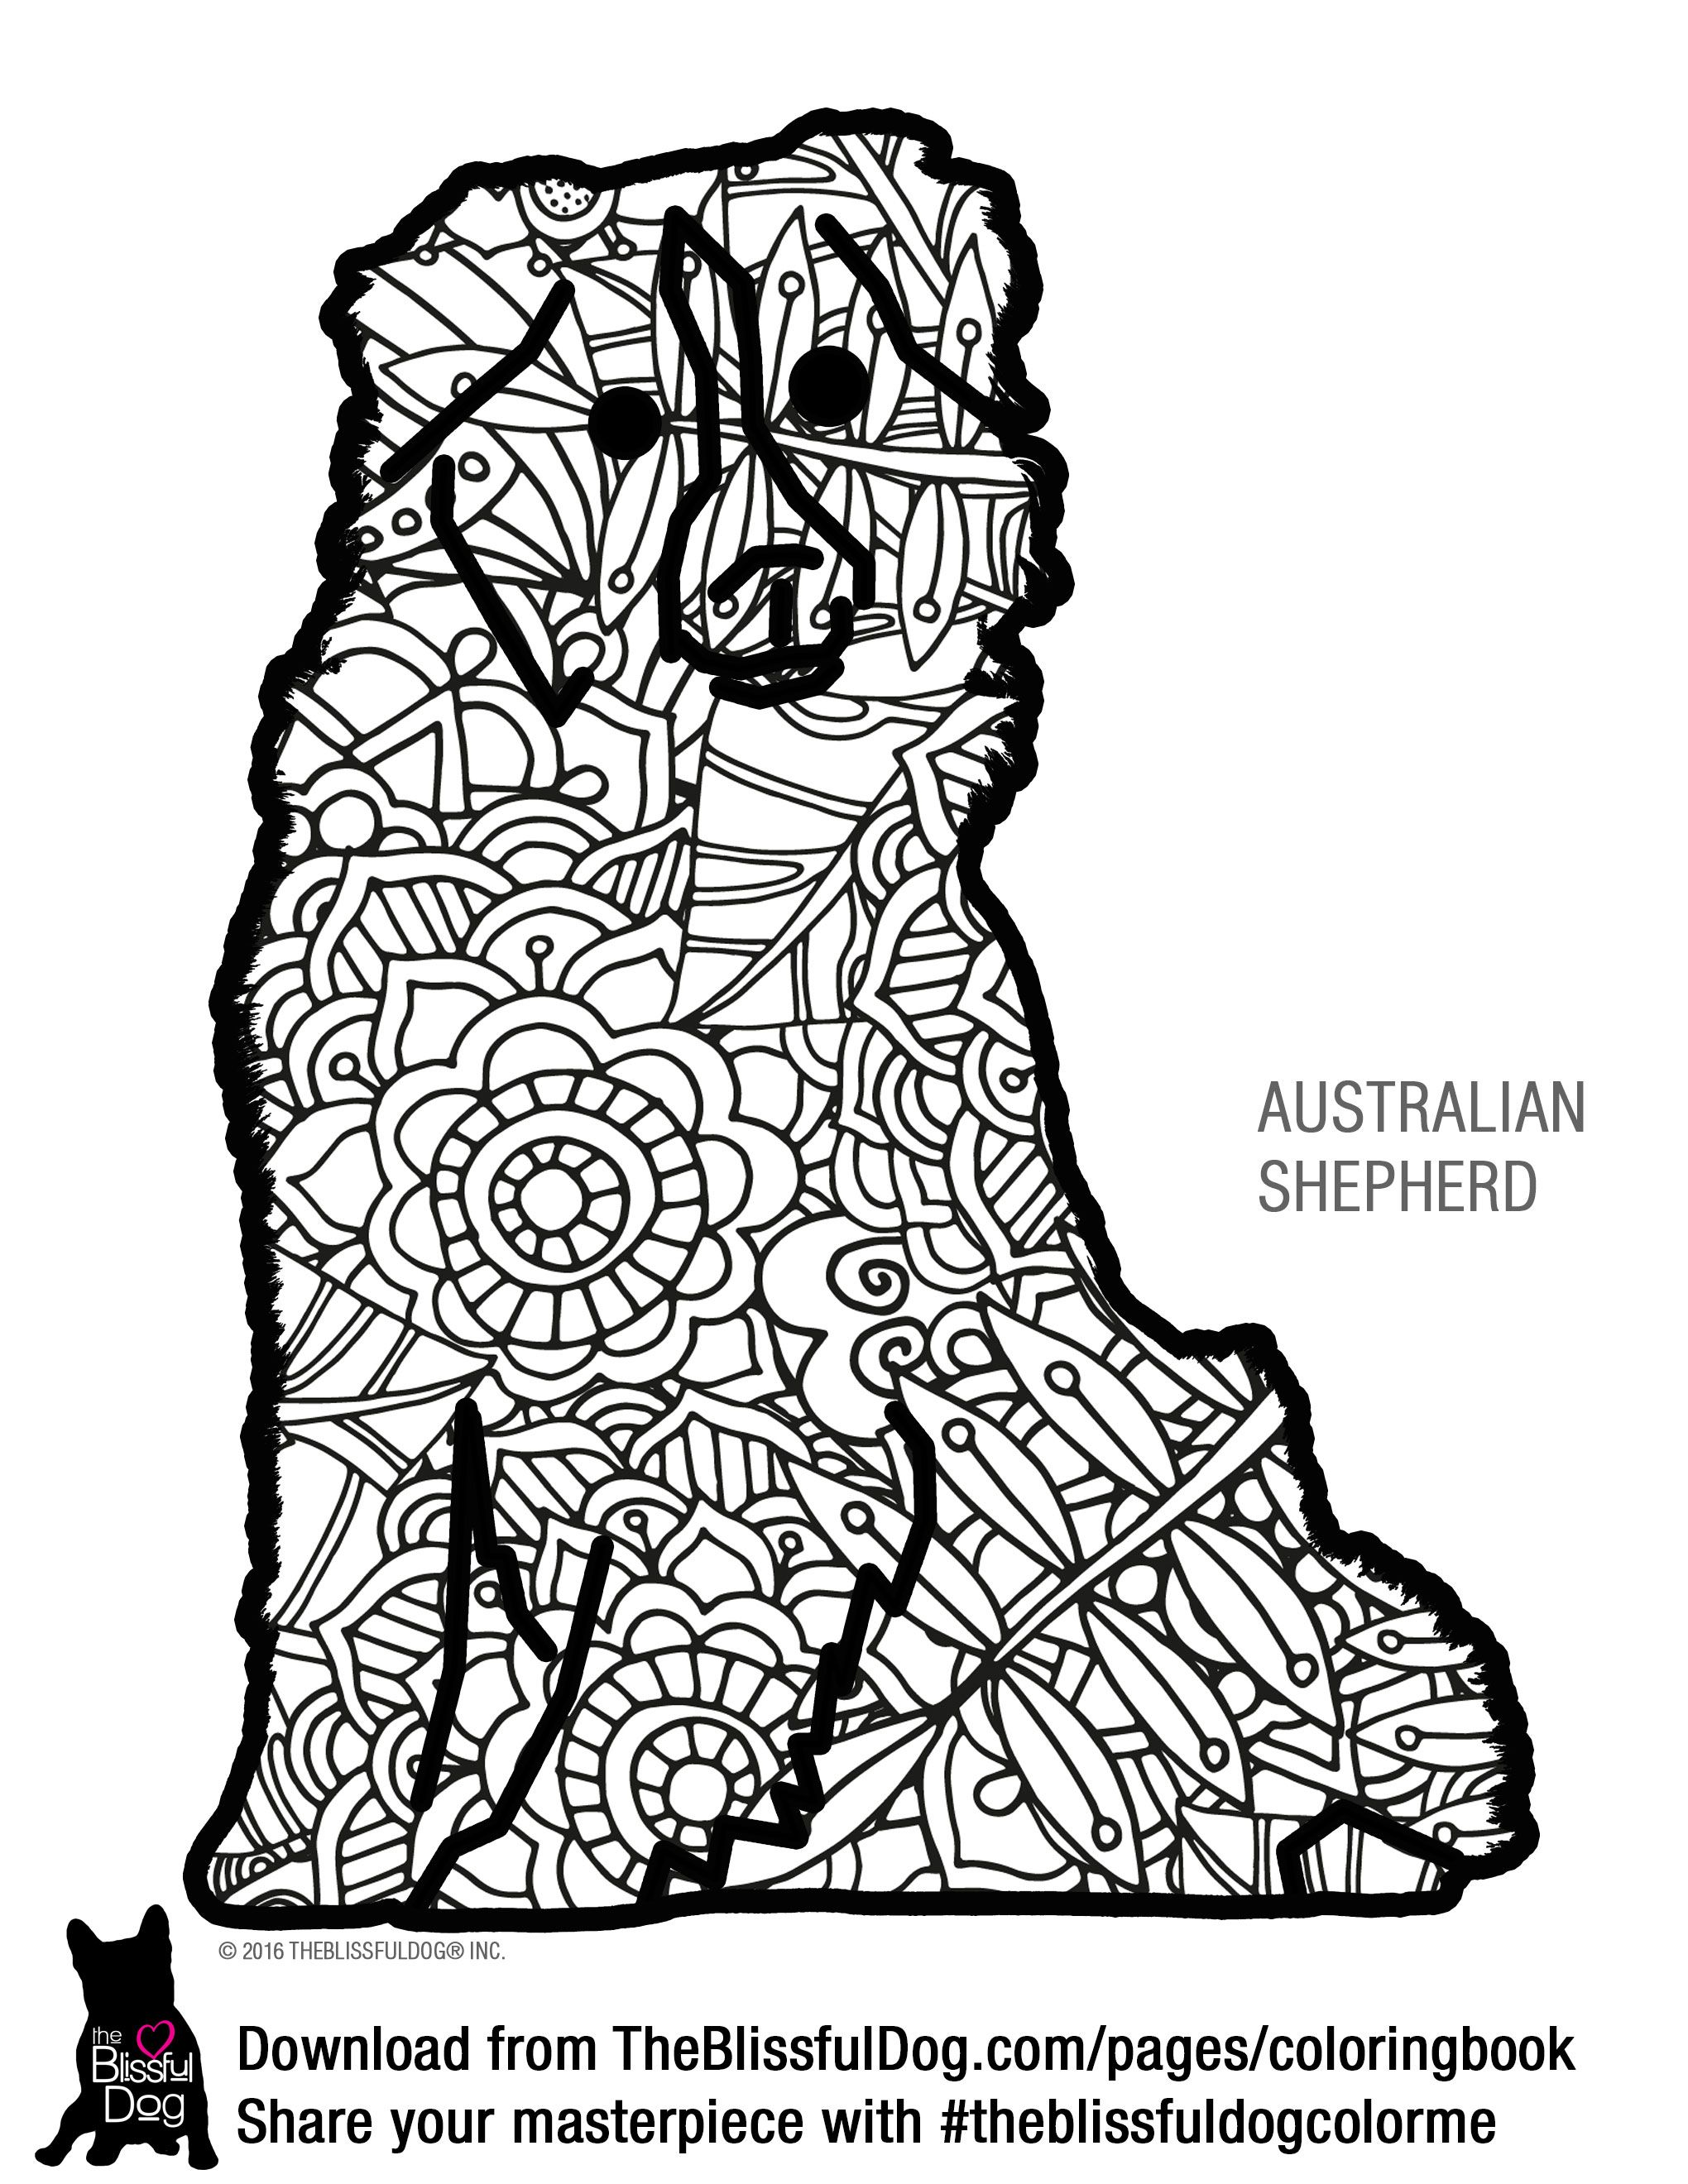 7 Pics Of Australian Shepherd Coloring Pages Australian Shepherd With Free Download Australian Shepherd Coloring Pages